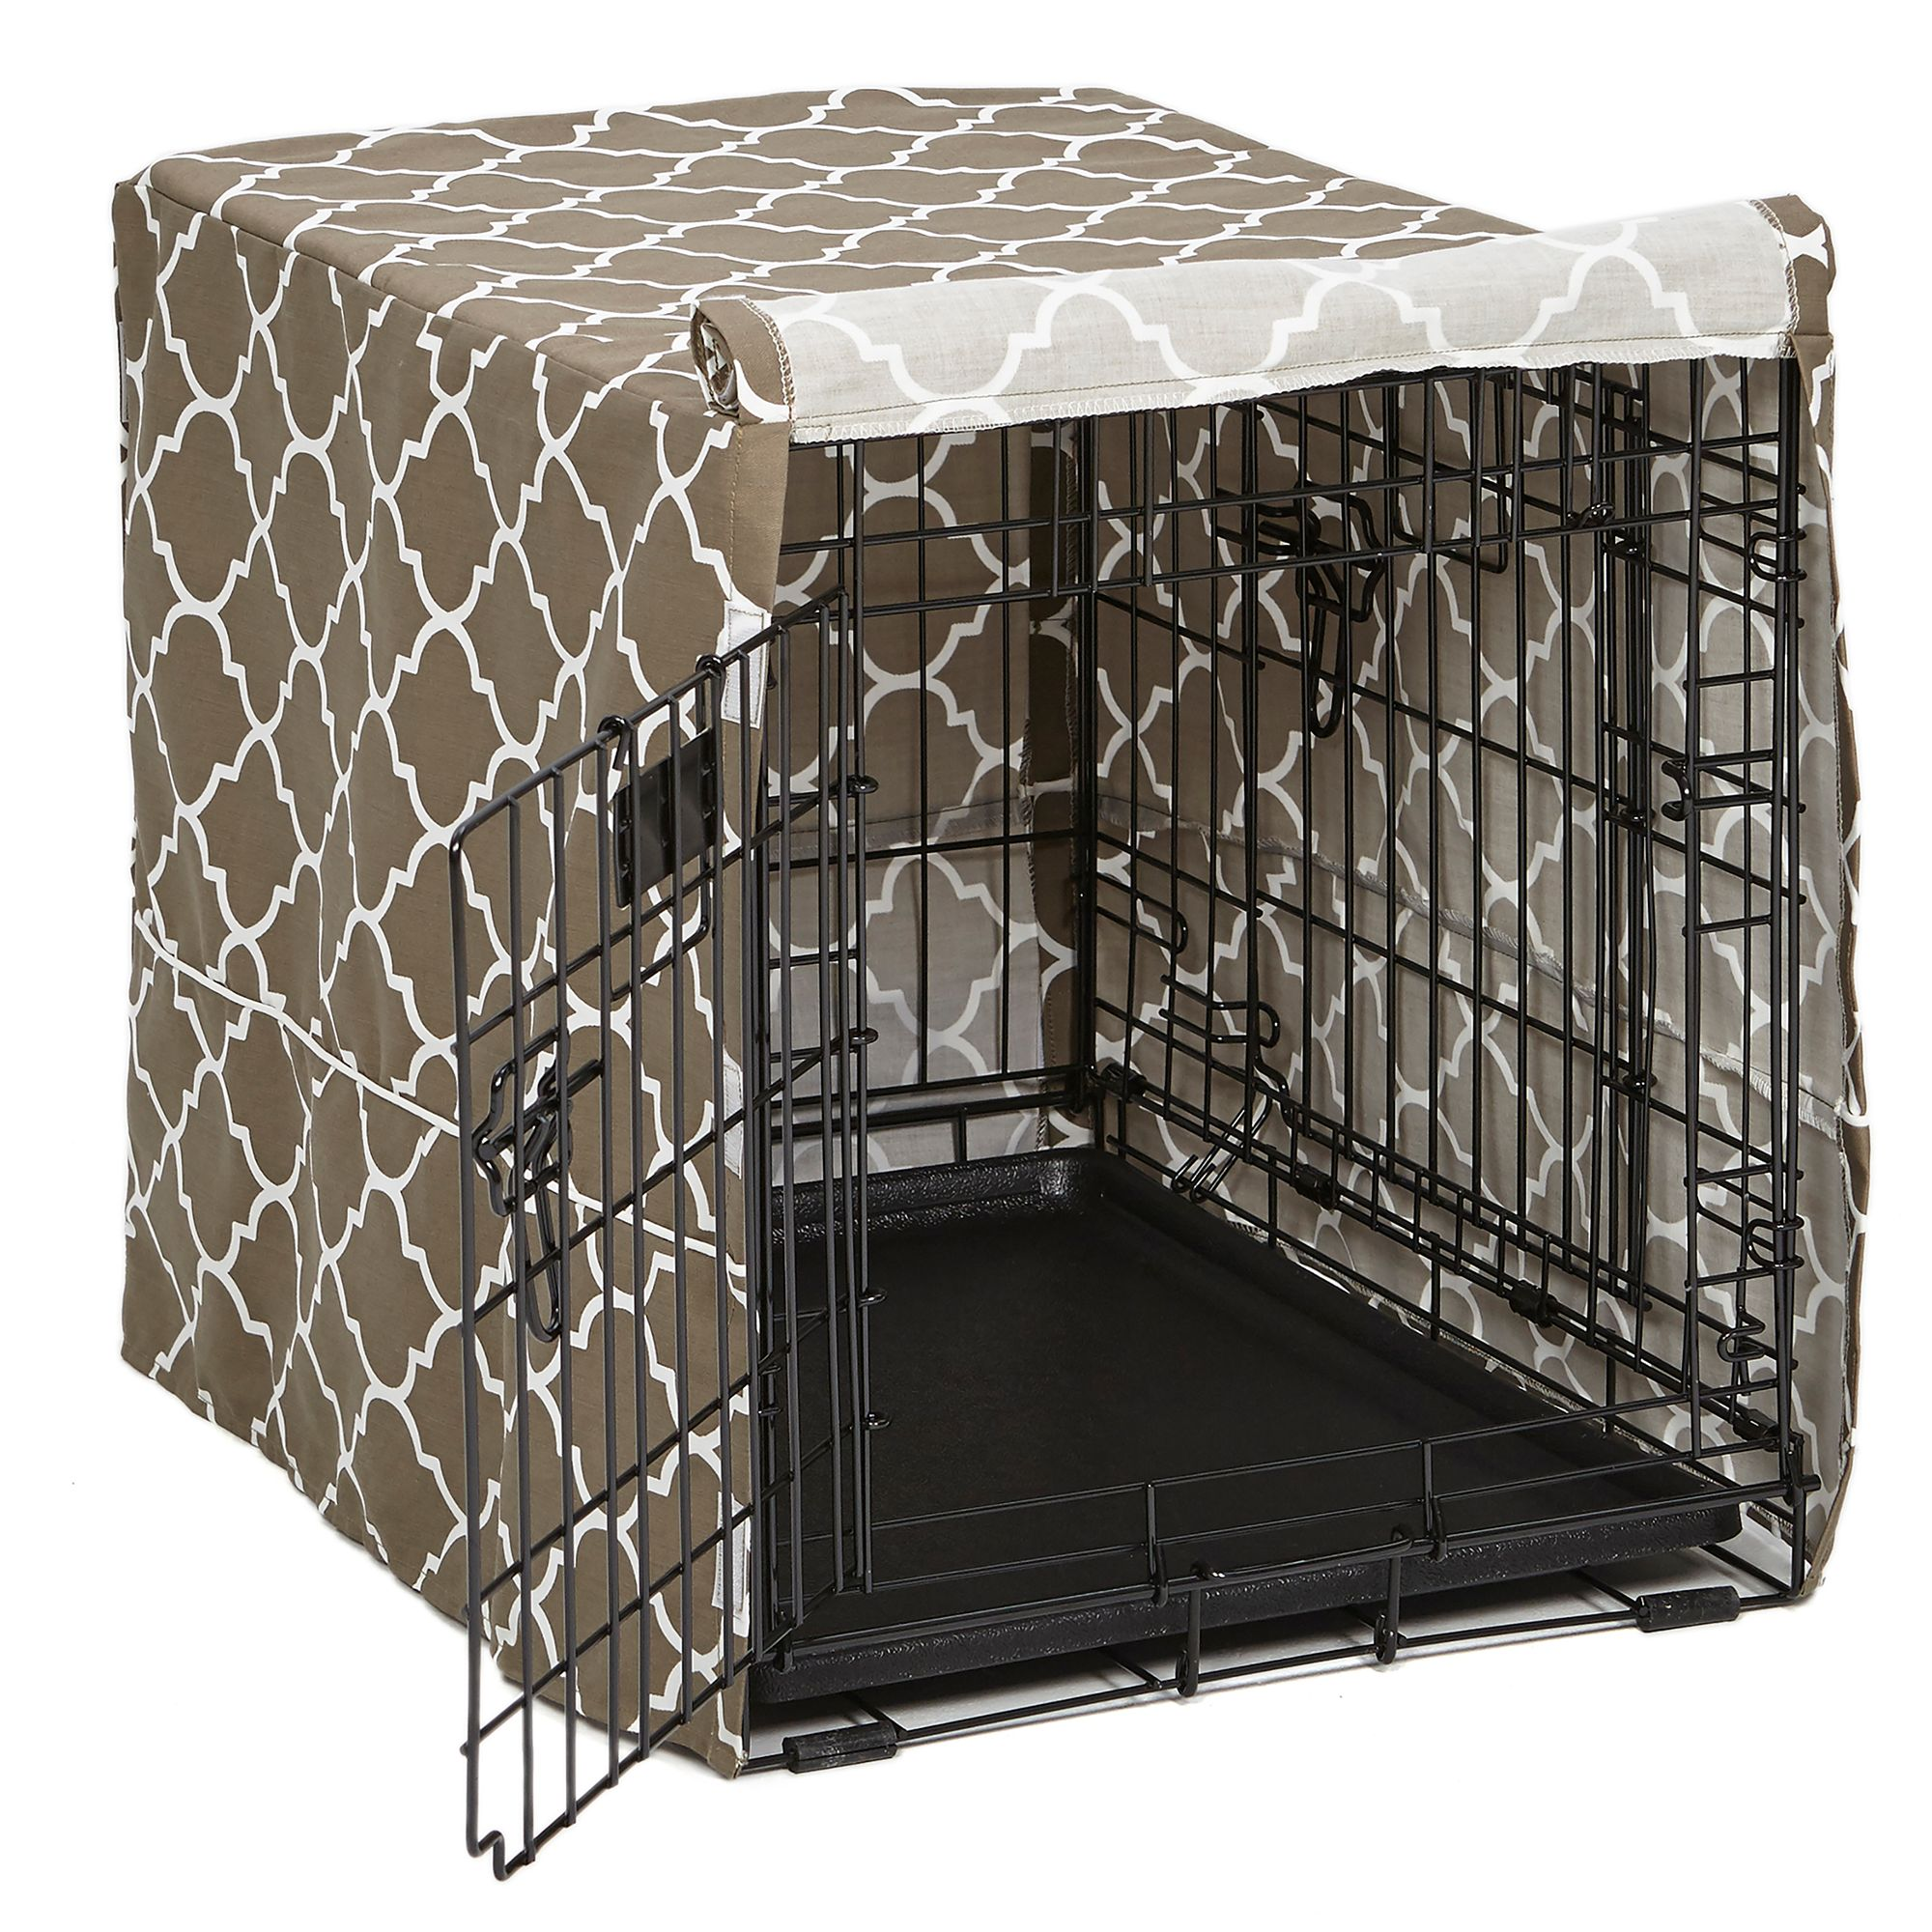 Mat & Crate Covers